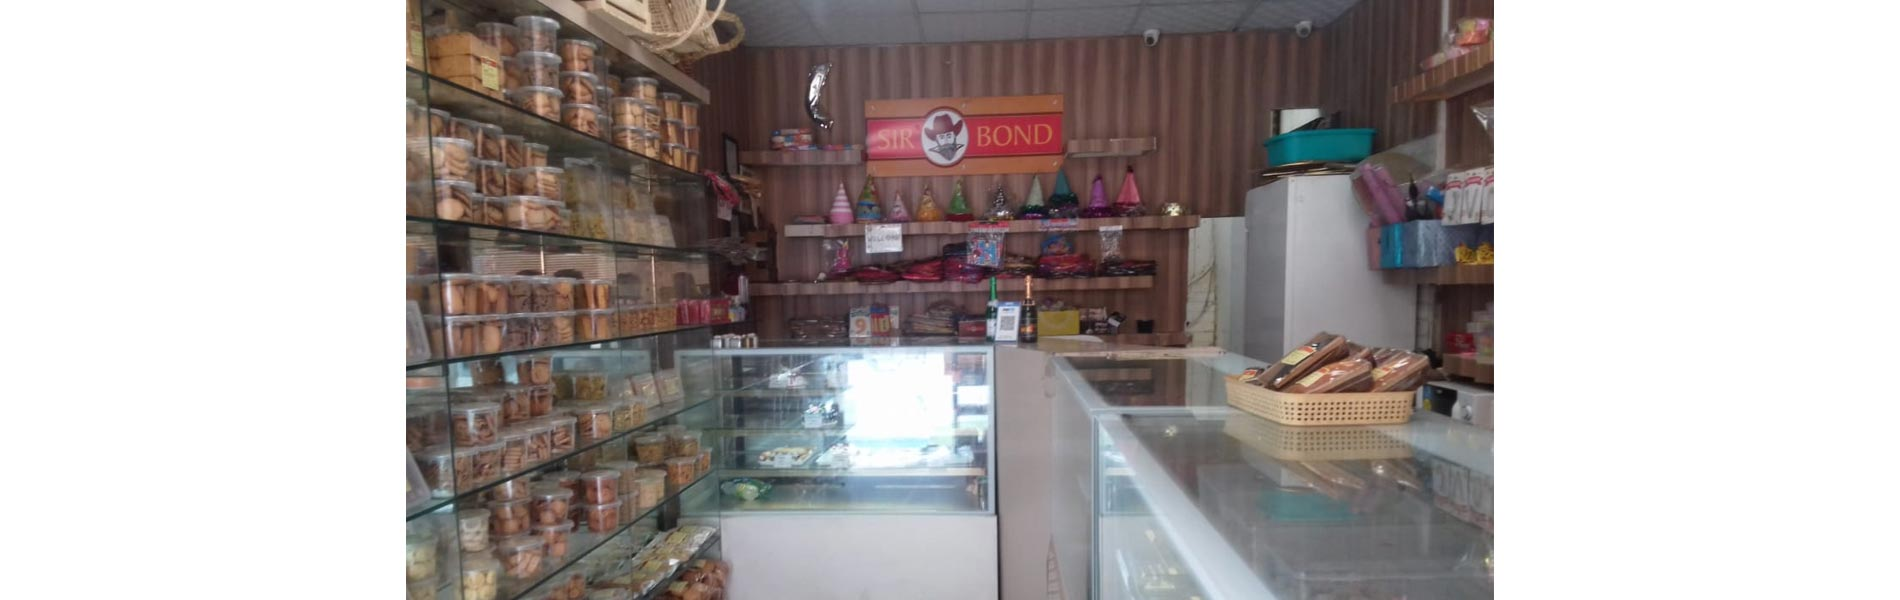 SIR BOND BAKEHOUSE PRIVATE LIMITED